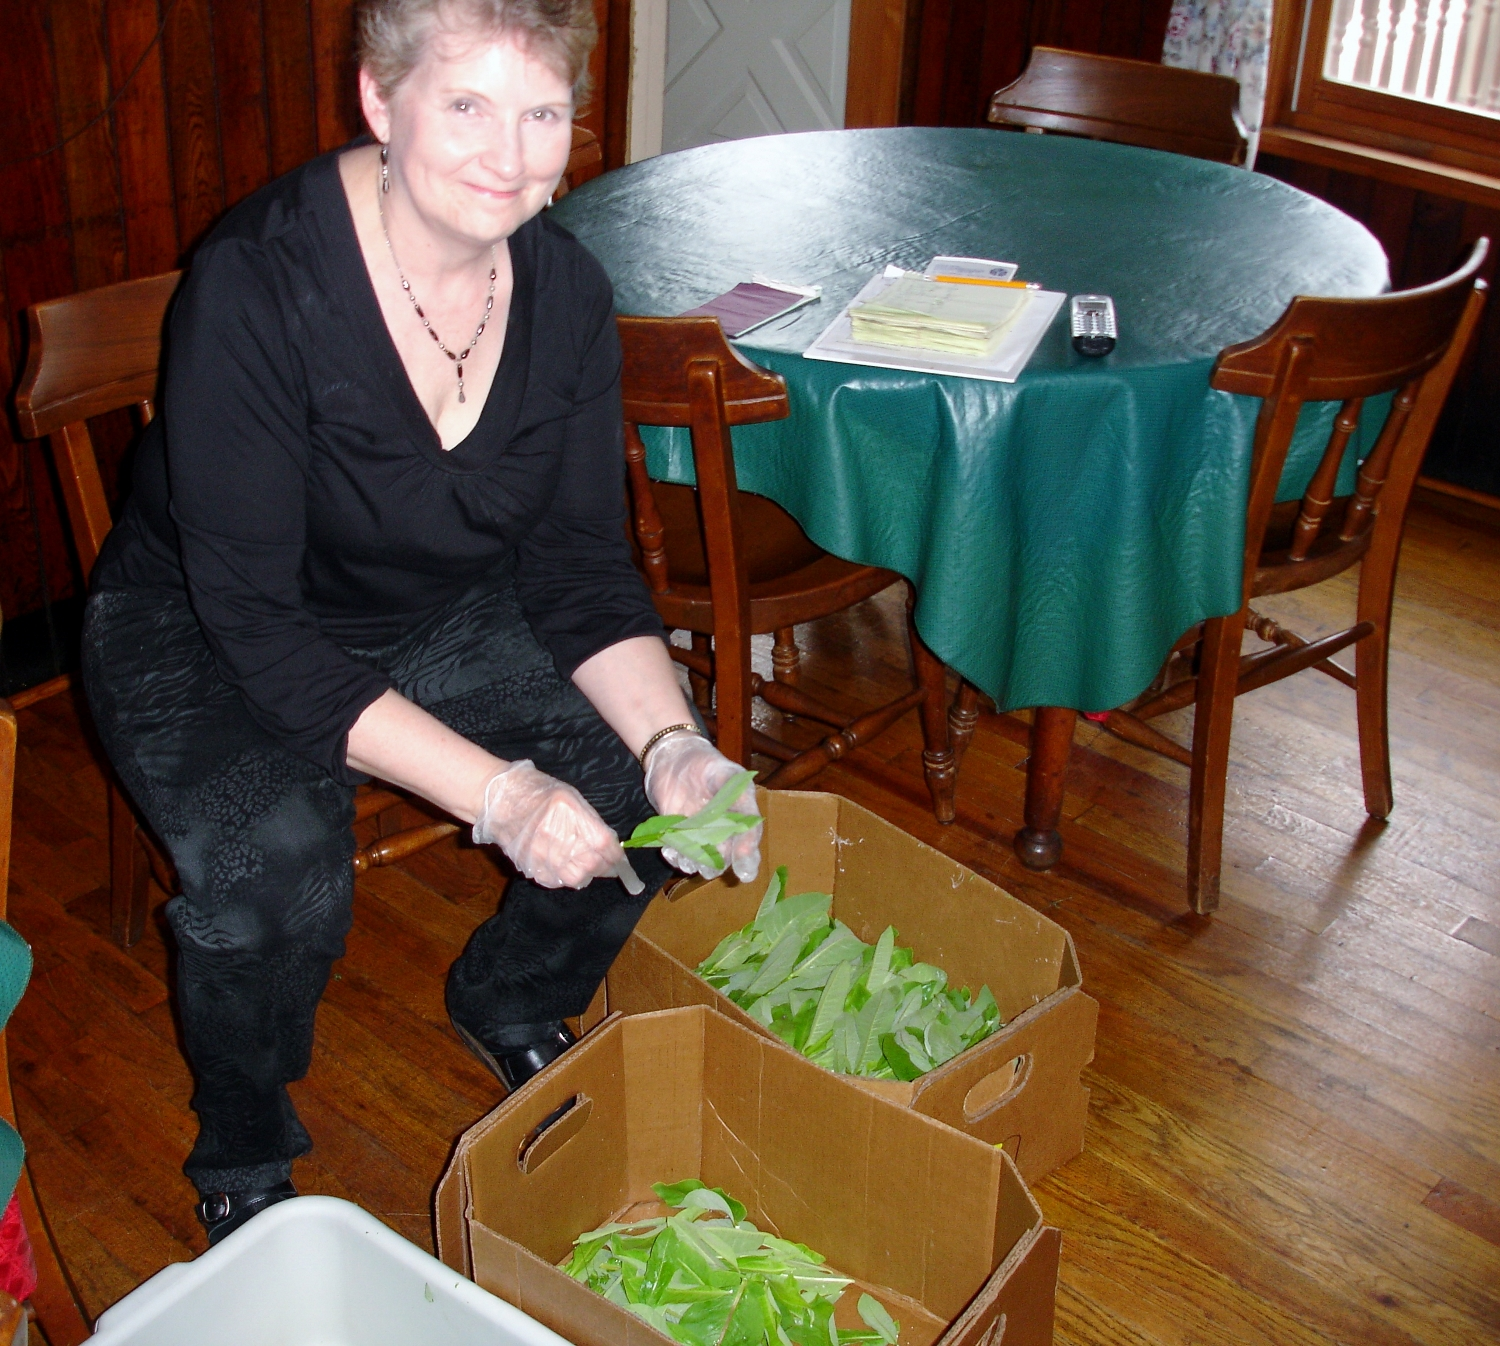 Tammie preps some just-picked milkweed for Sunday lunch.